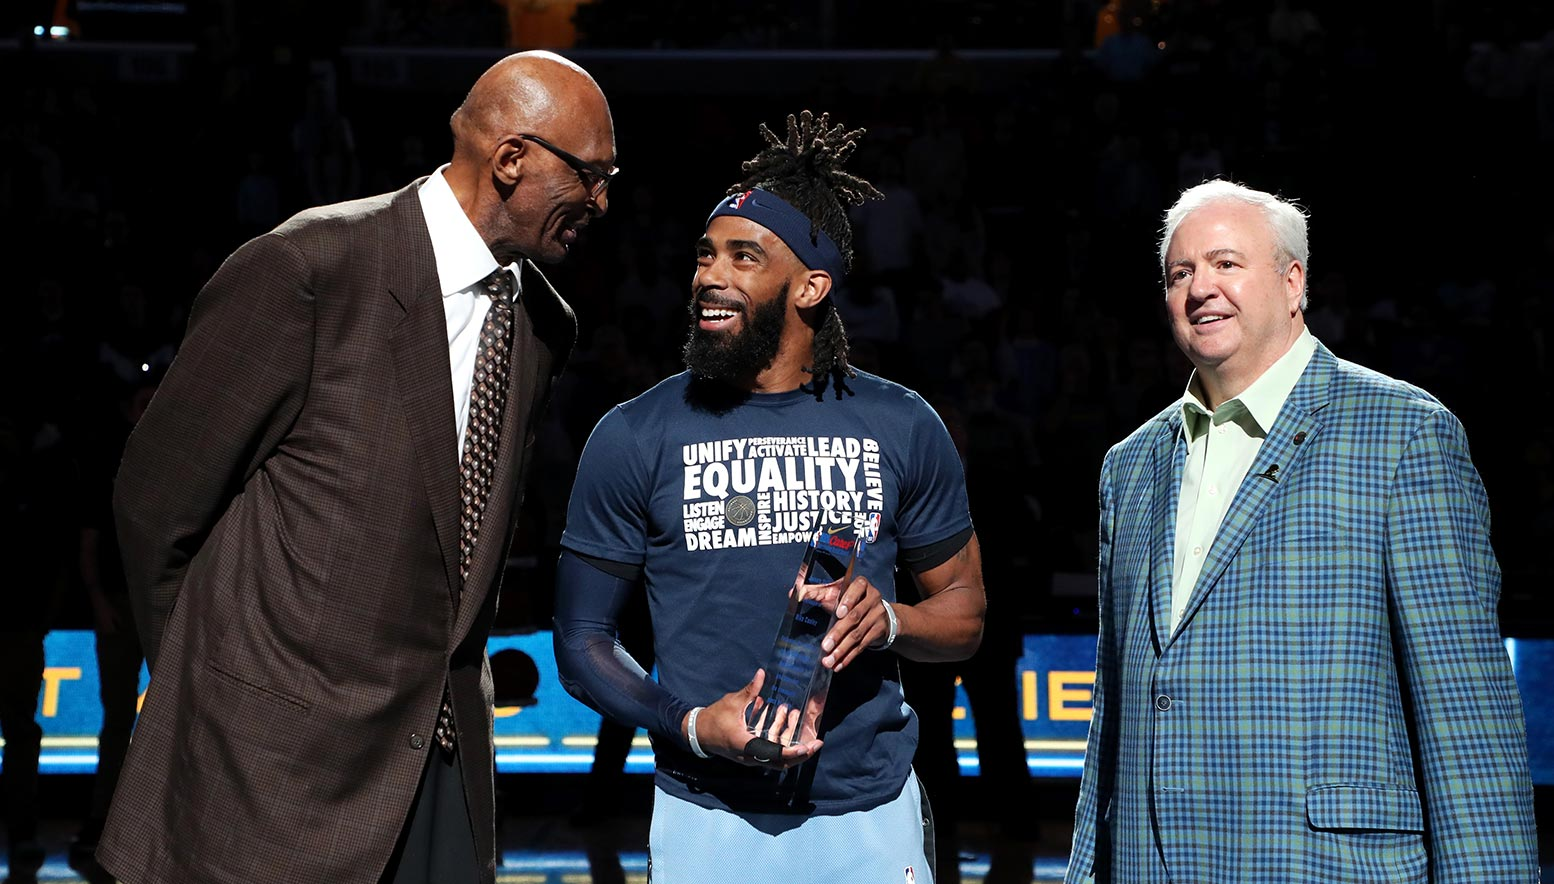 Mike Conley Named Among Finalists For 2018 19 Nba Sportsmanship Award And 2018 19 Twyman Stokes Teammate Of The Year Award Memphis Grizzlies